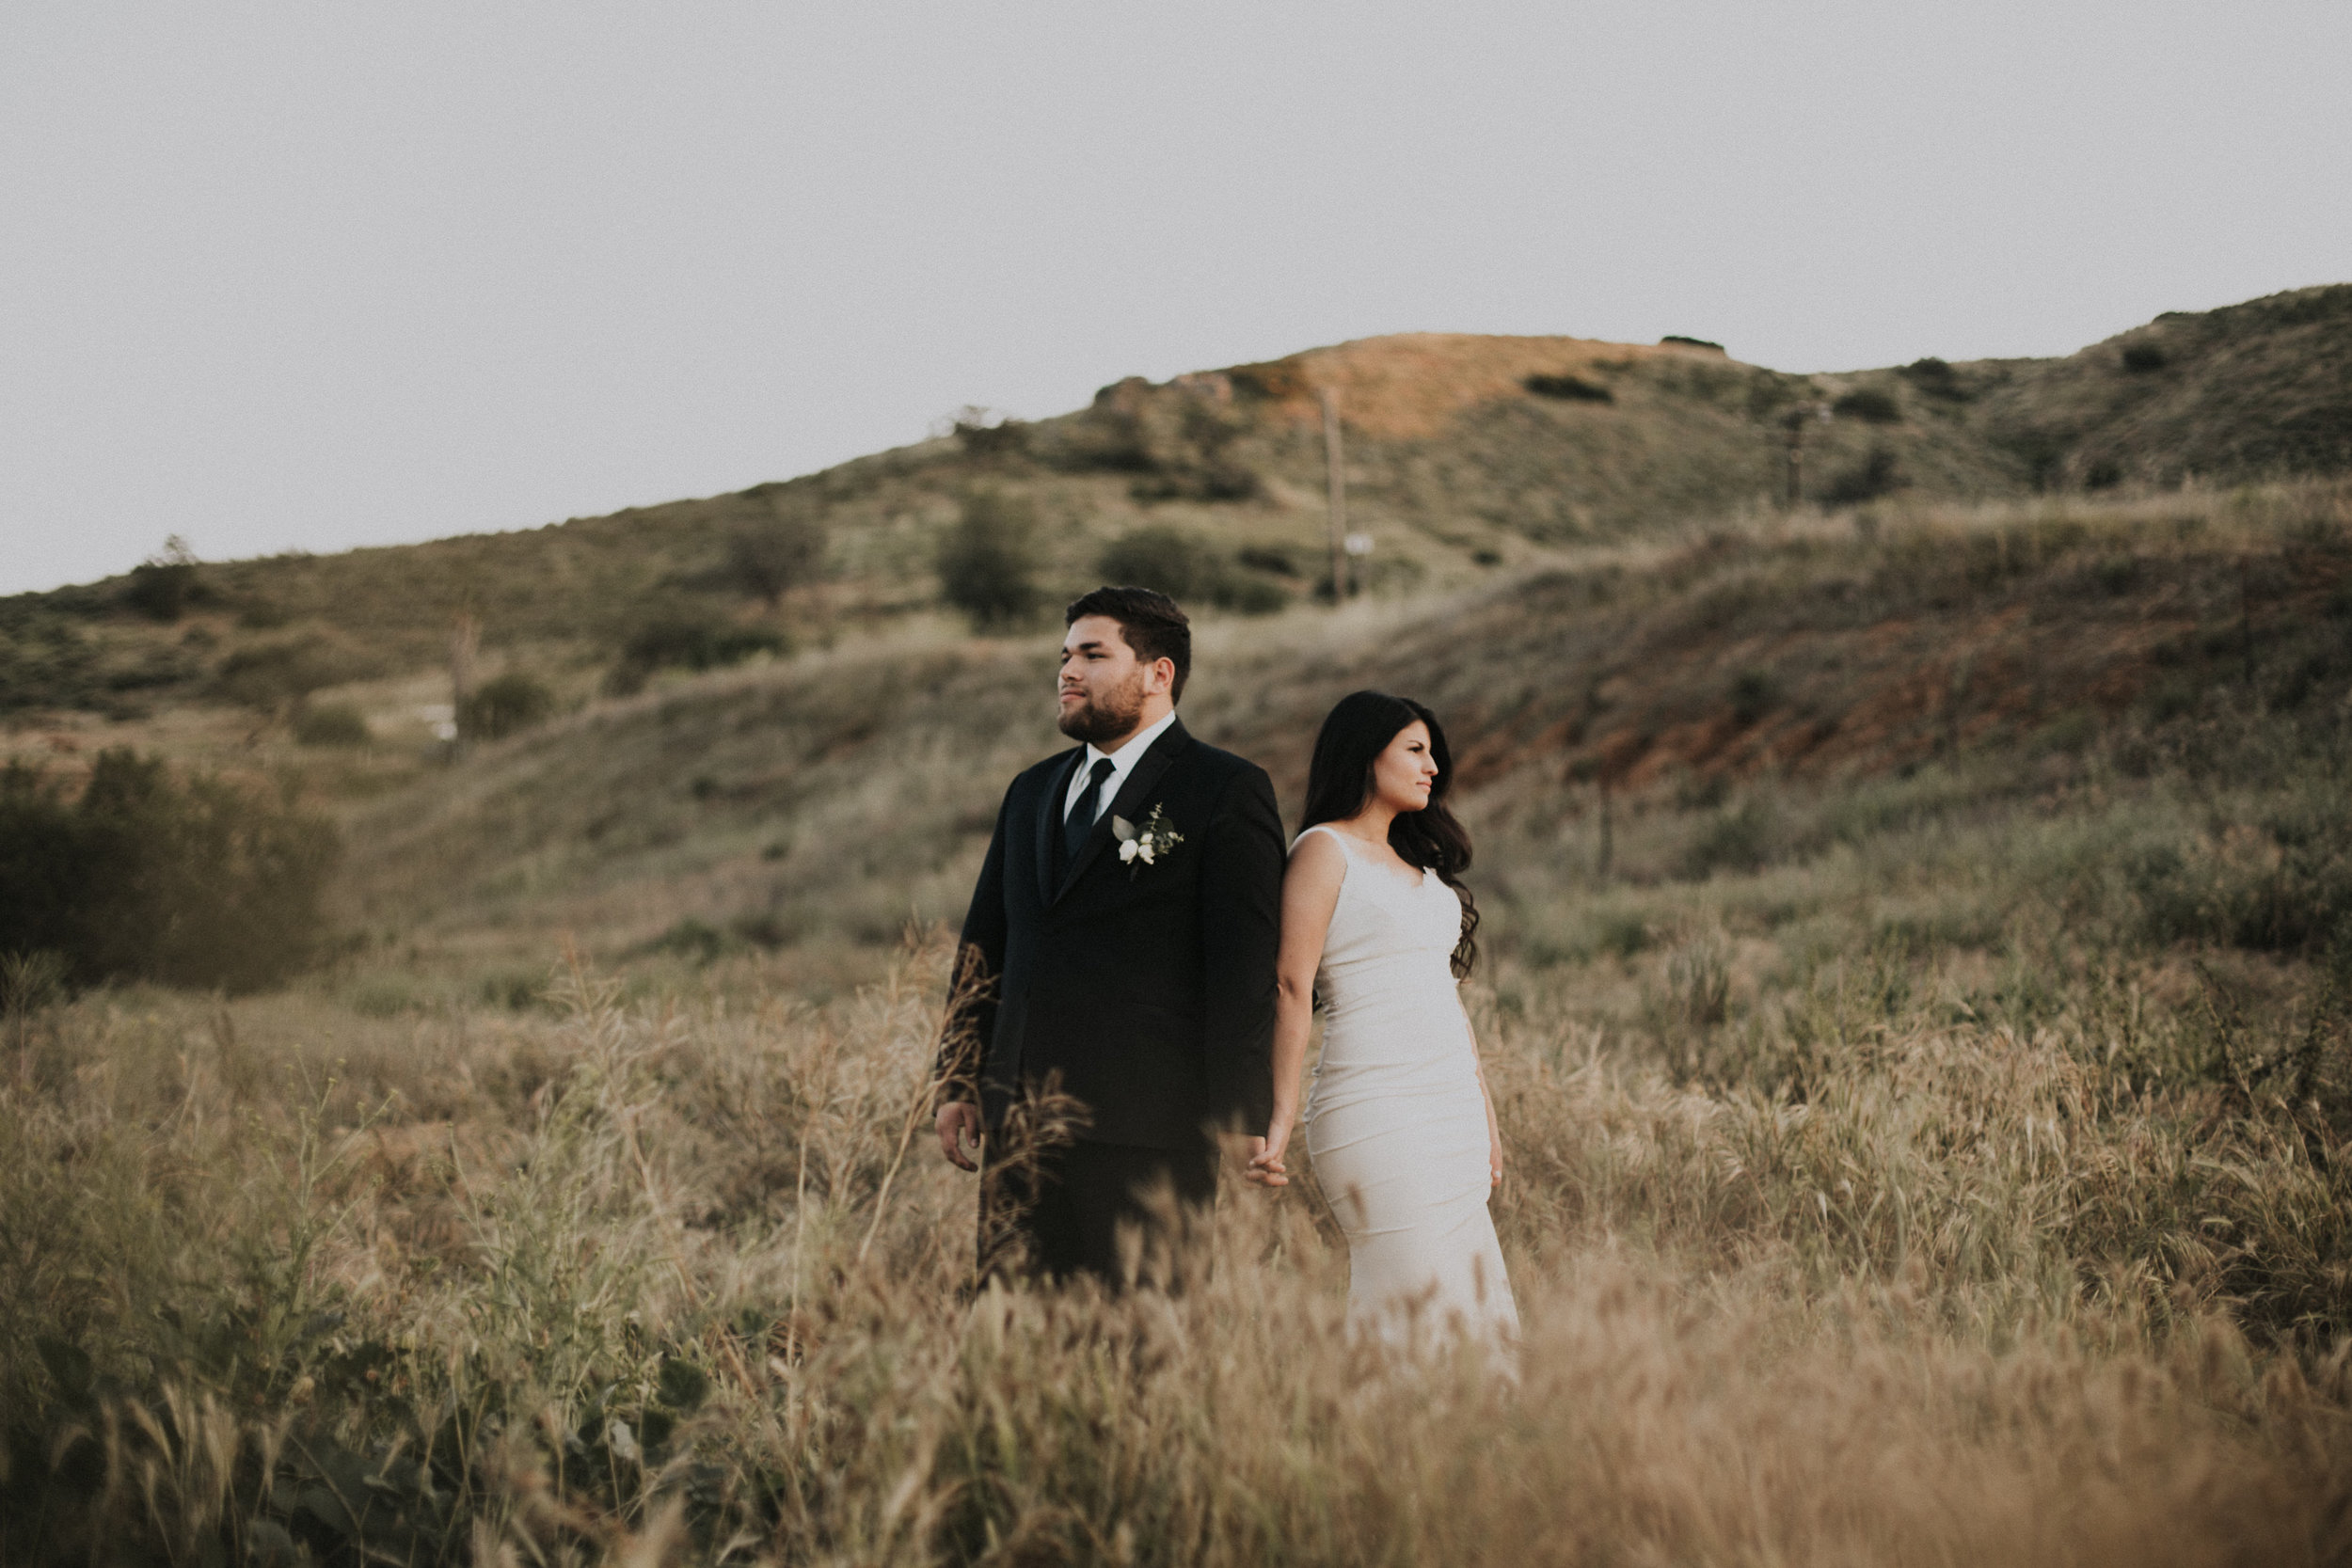 Bri + Dominick - Wedding (7 of 1).jpg